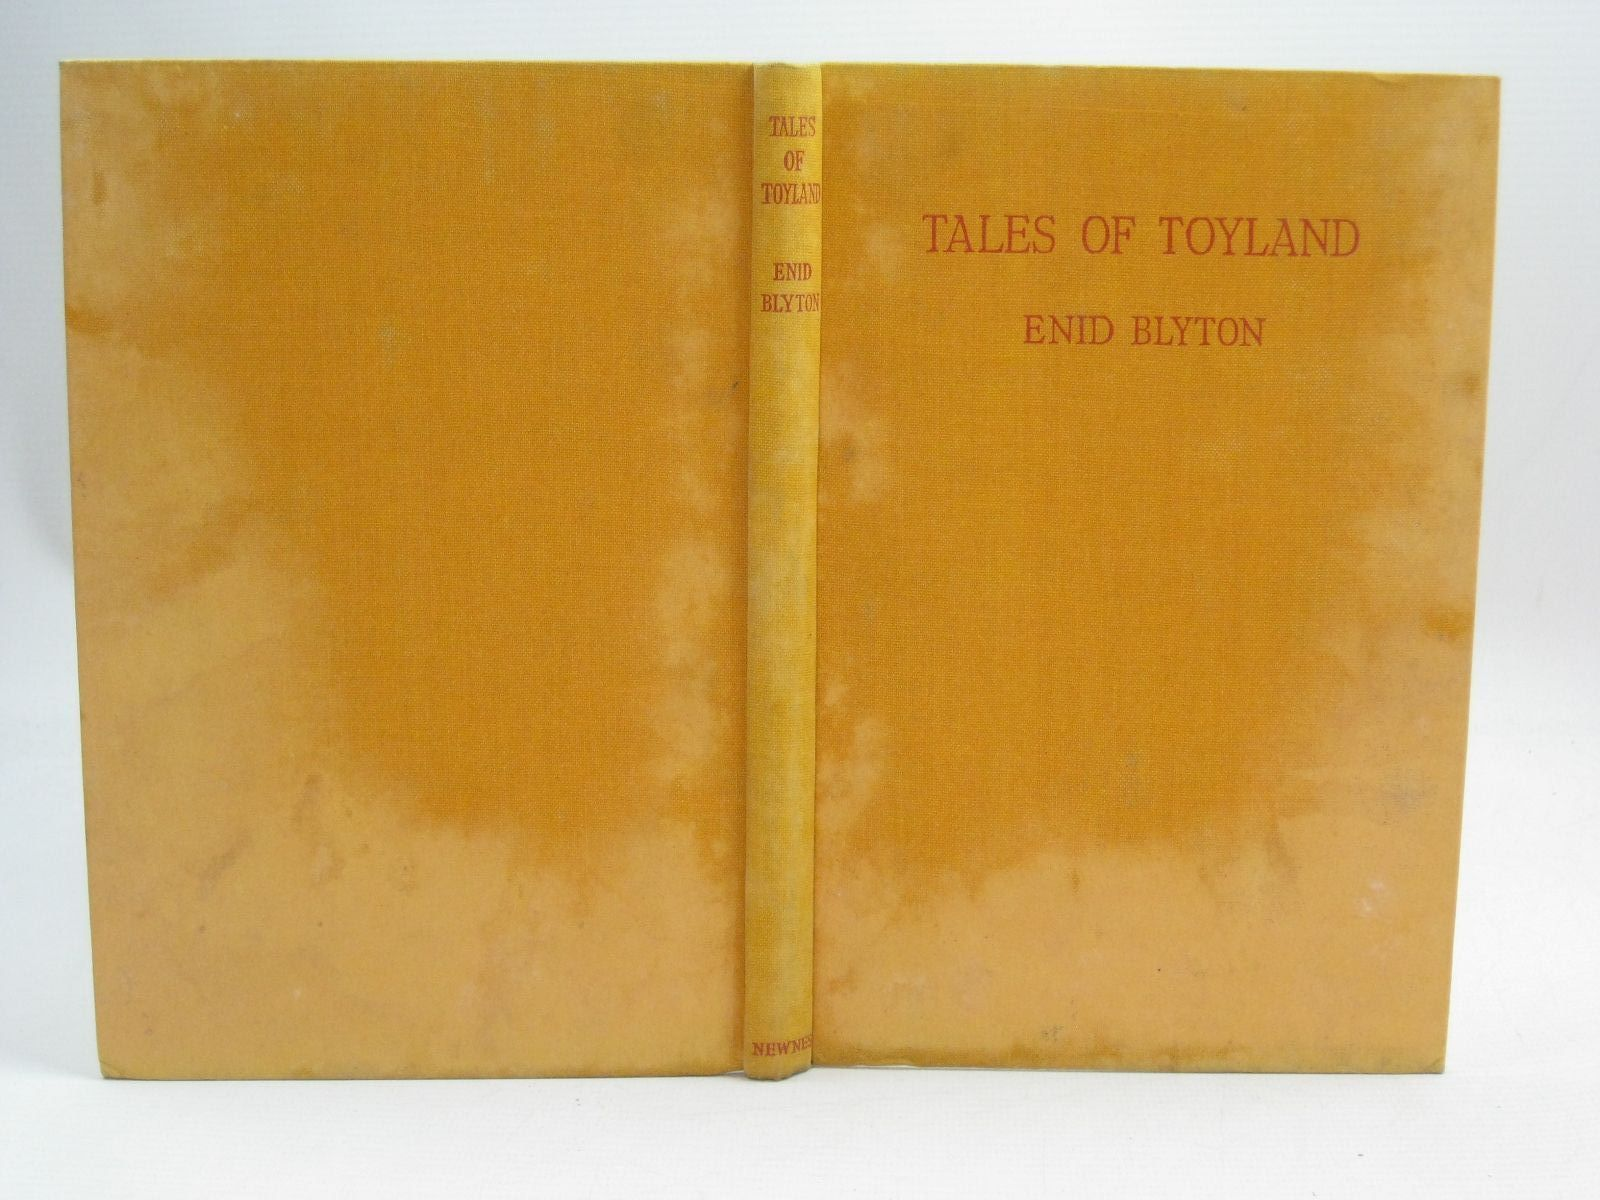 Photo of TALES OF TOYLAND written by Blyton, Enid illustrated by McGavin, Hilda published by George Newnes Limited (STOCK CODE: 1405862)  for sale by Stella & Rose's Books